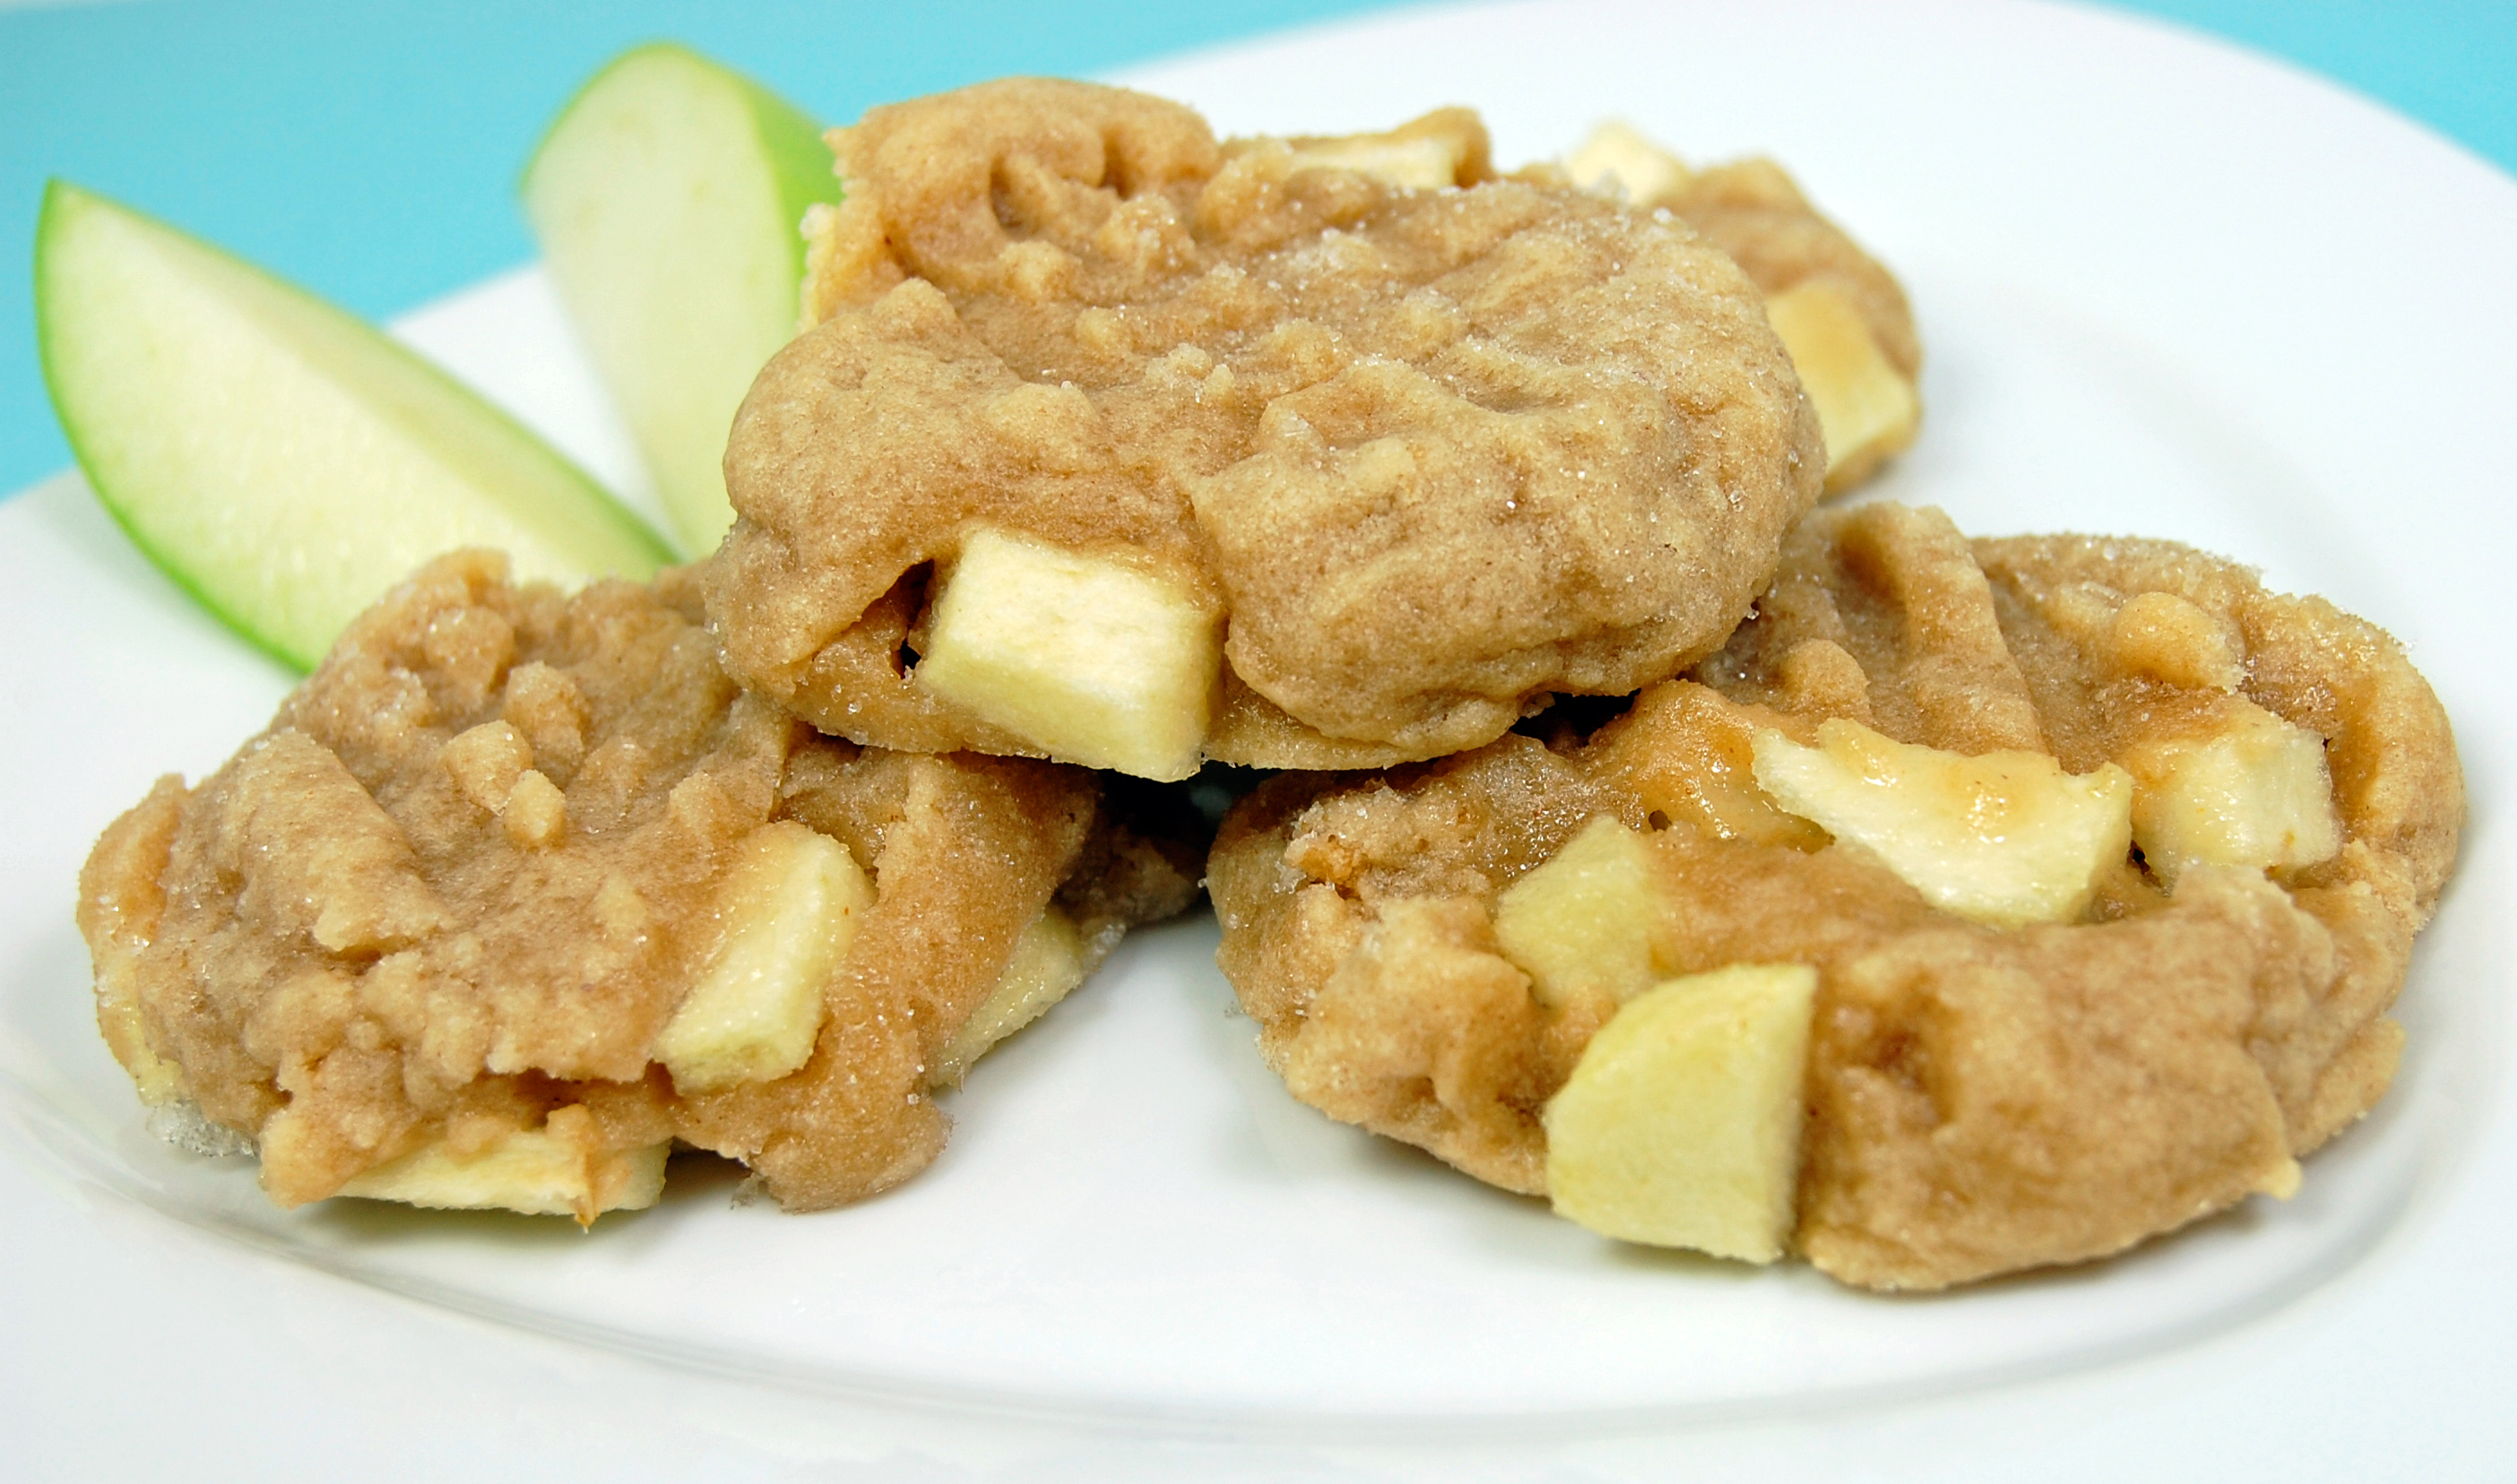 Apple Pickin' Peanut Butter Cookies